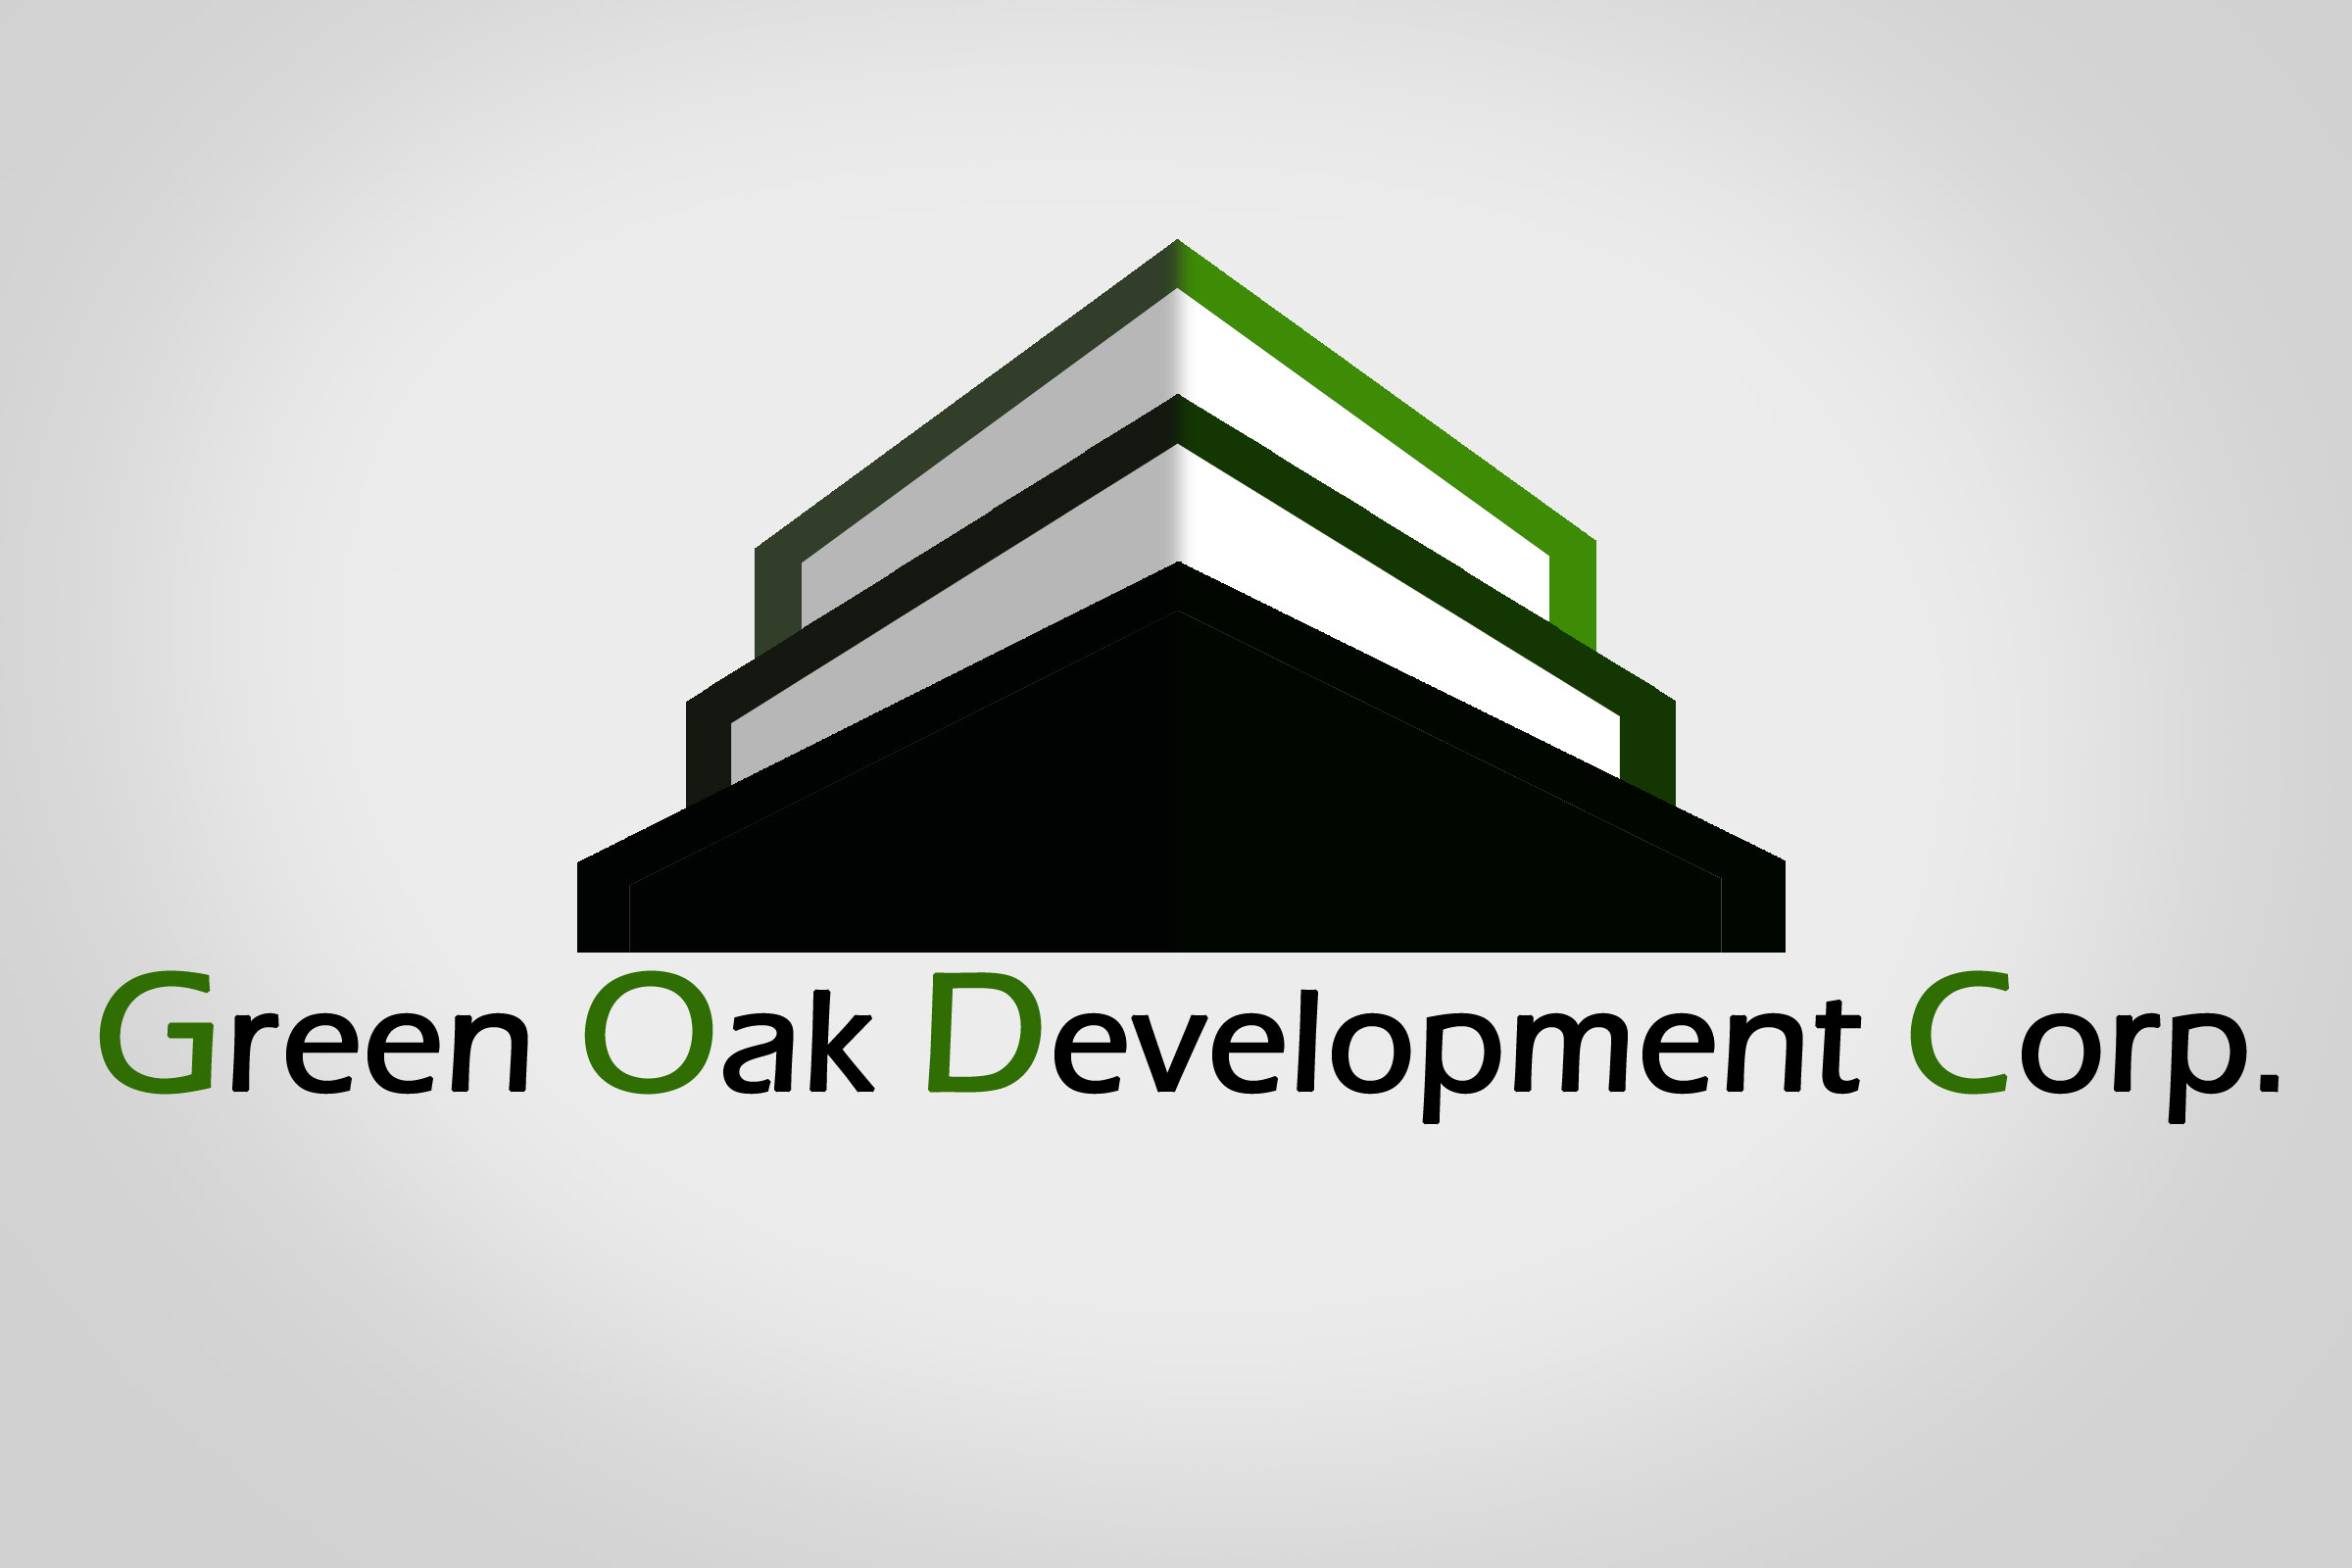 Logo Design by Nishanth Np - Entry No. 166 in the Logo Design Contest Unique Logo Design Wanted for Green Oak Development Corp..